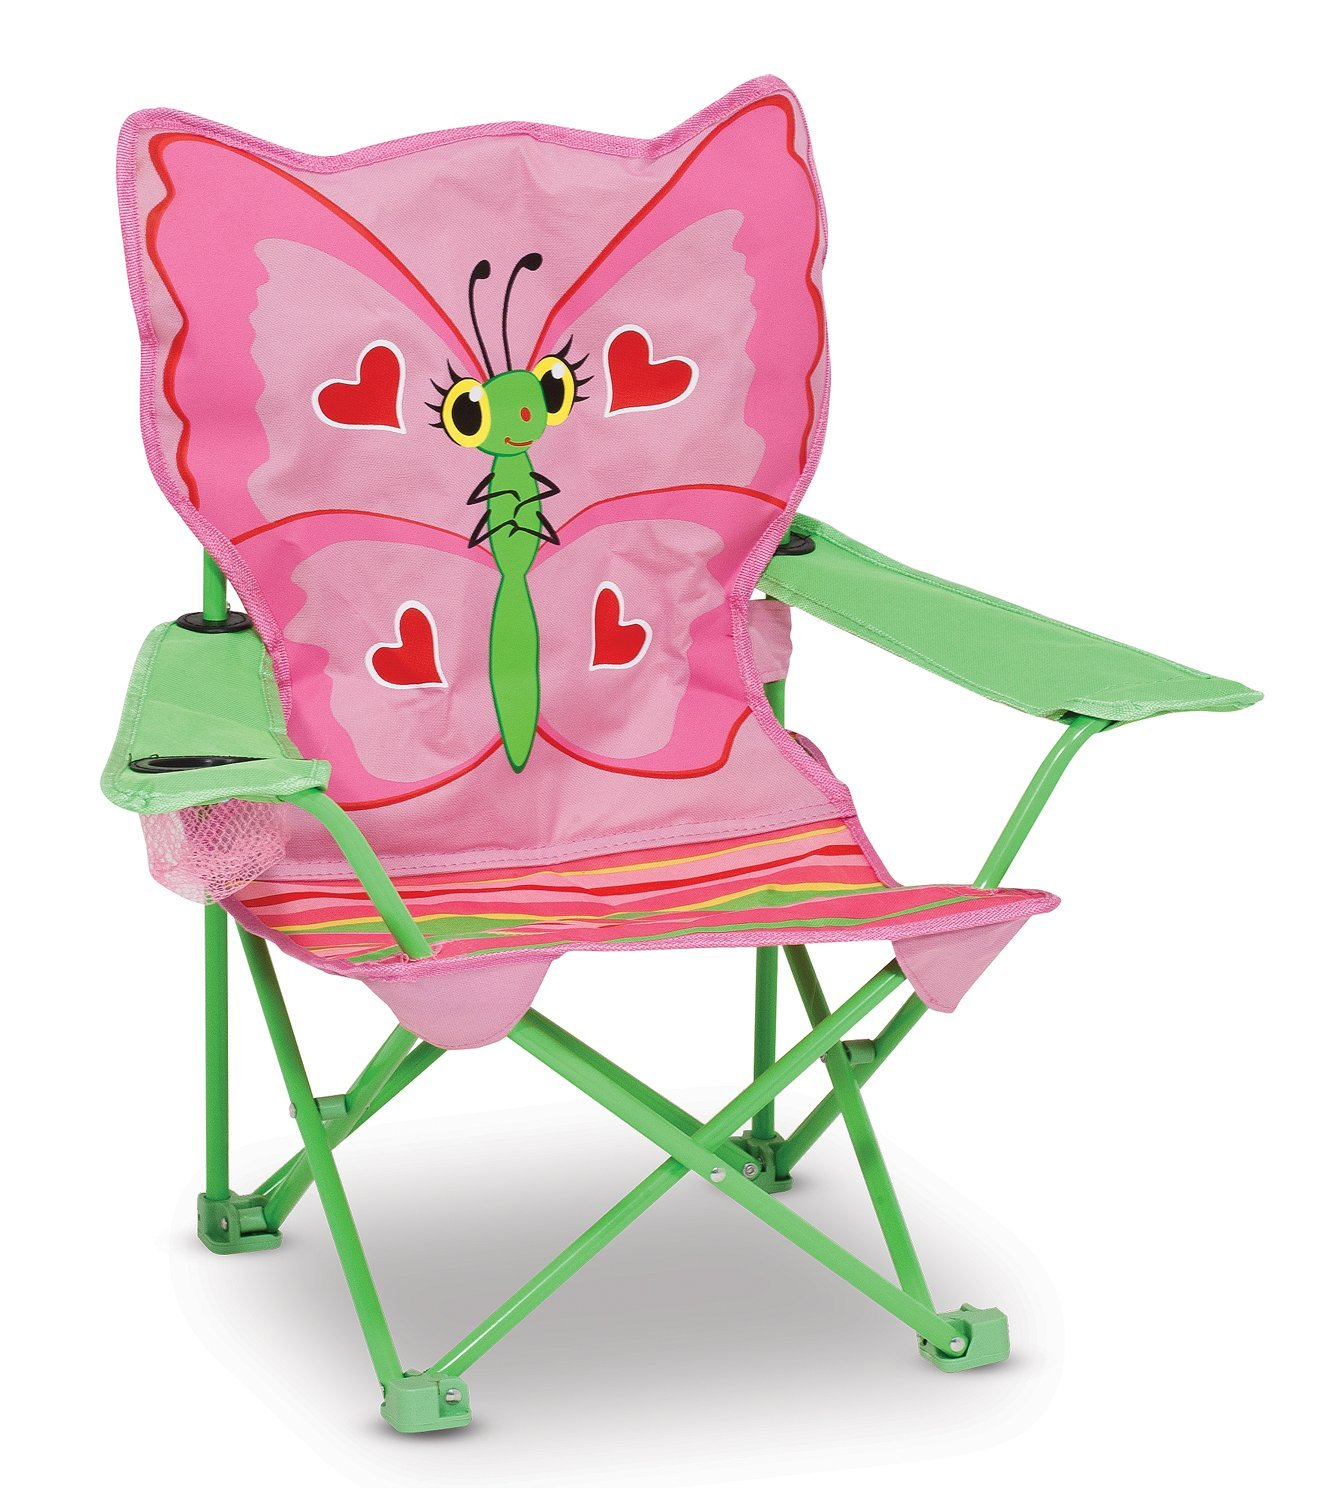 Top 10 best kids folding chairs